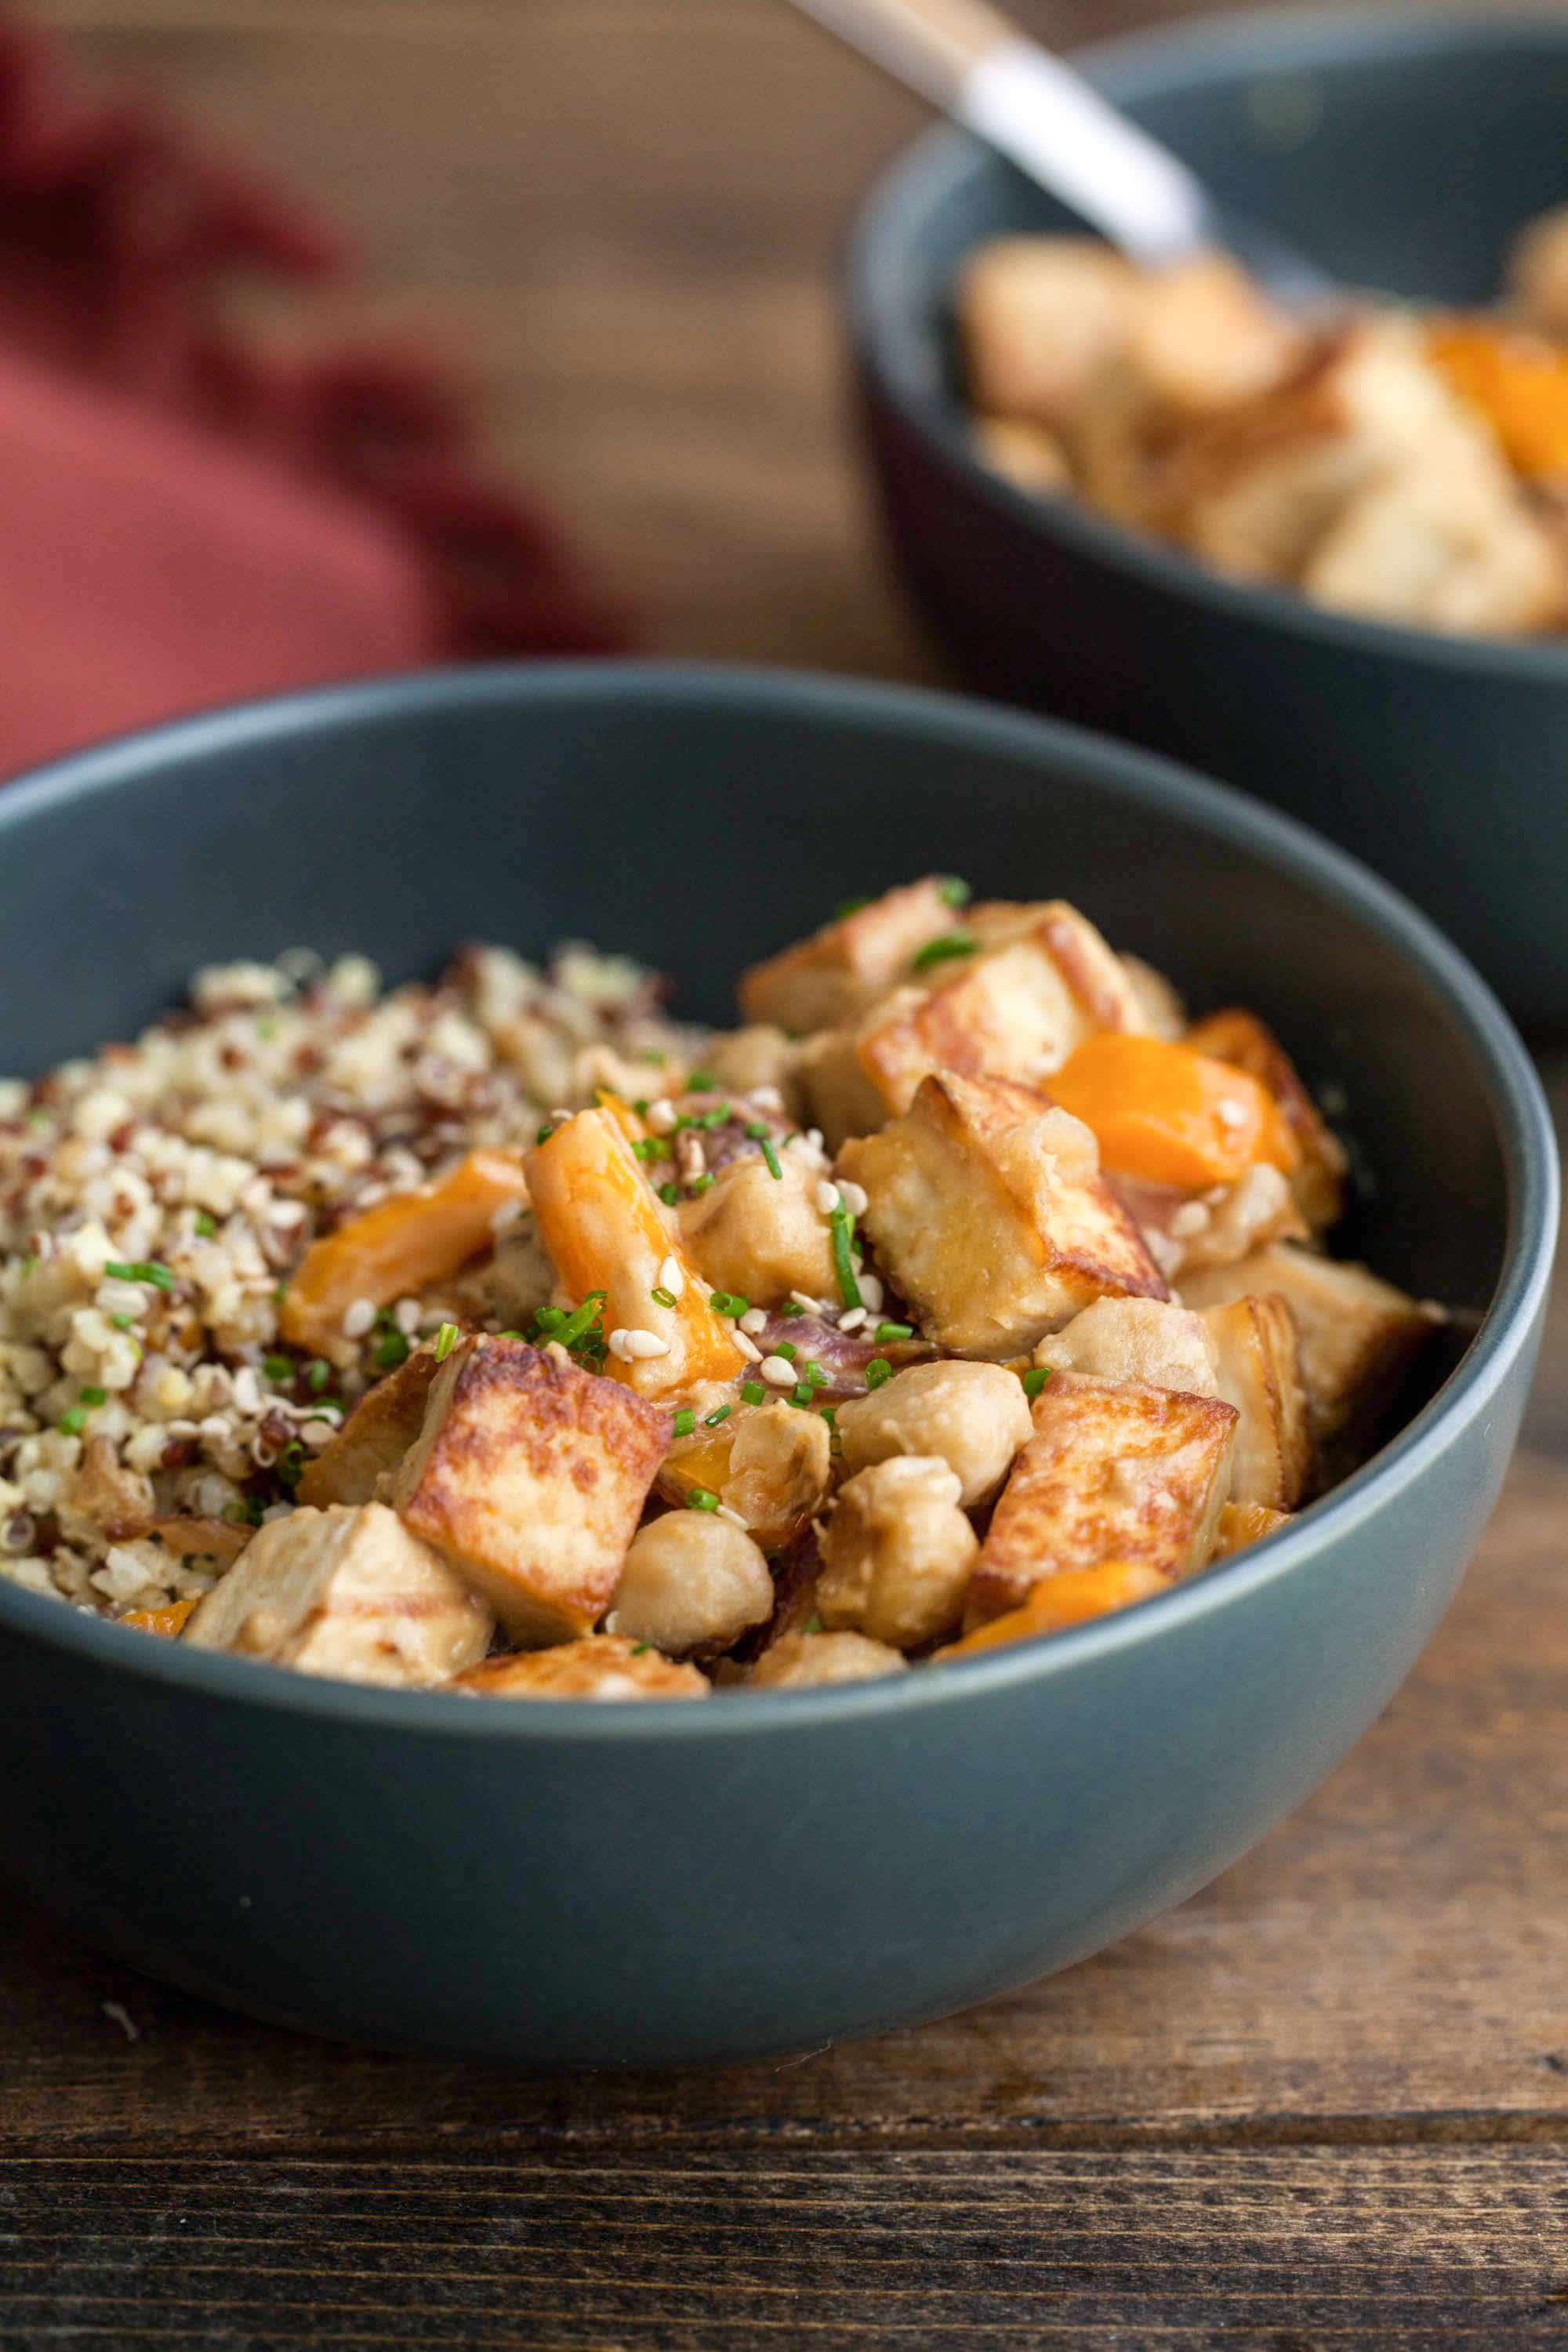 10 Easy Vegan Meals to Make This Summer | Kitchn